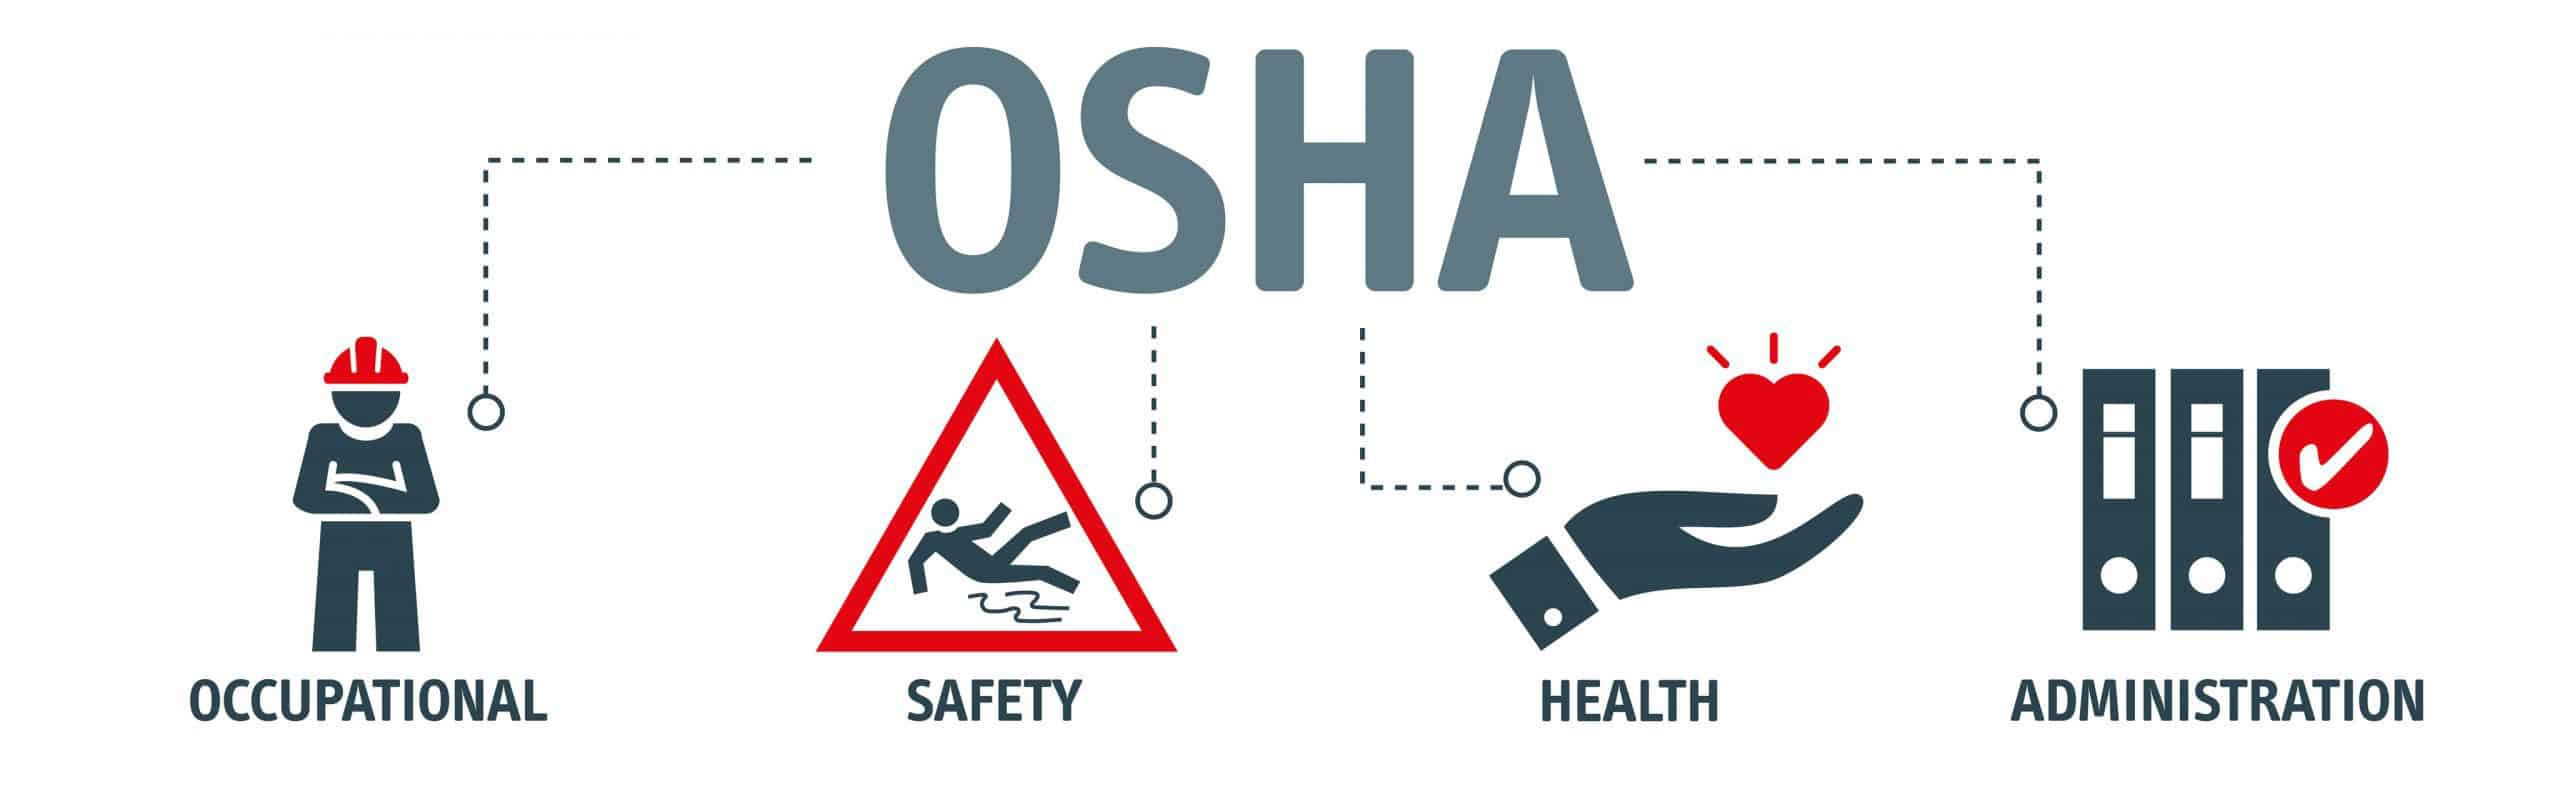 Occupational Safety and Health Administration inforgraphic